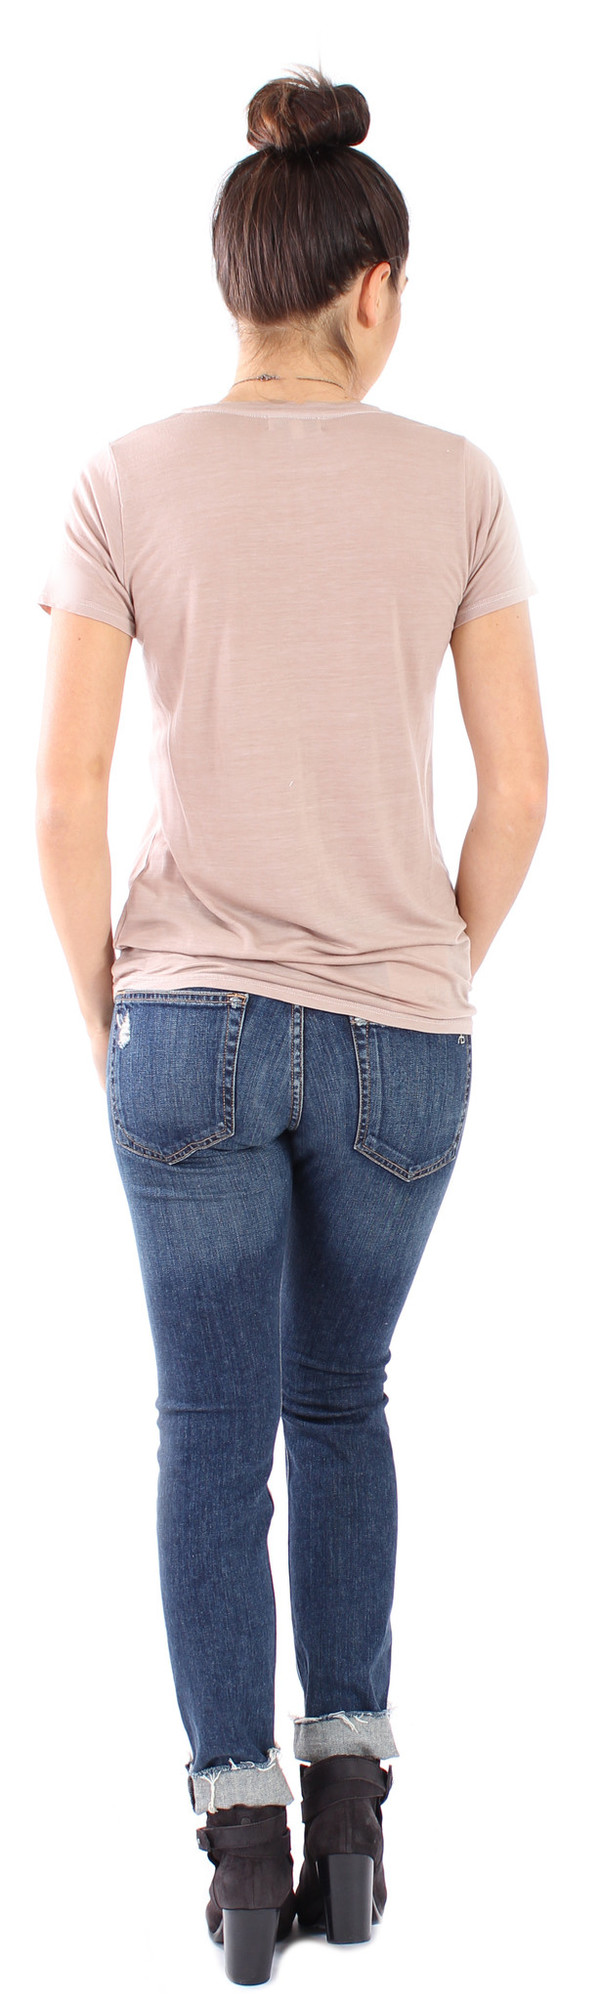 The Lady & The Sailor Basic Tee in Almond